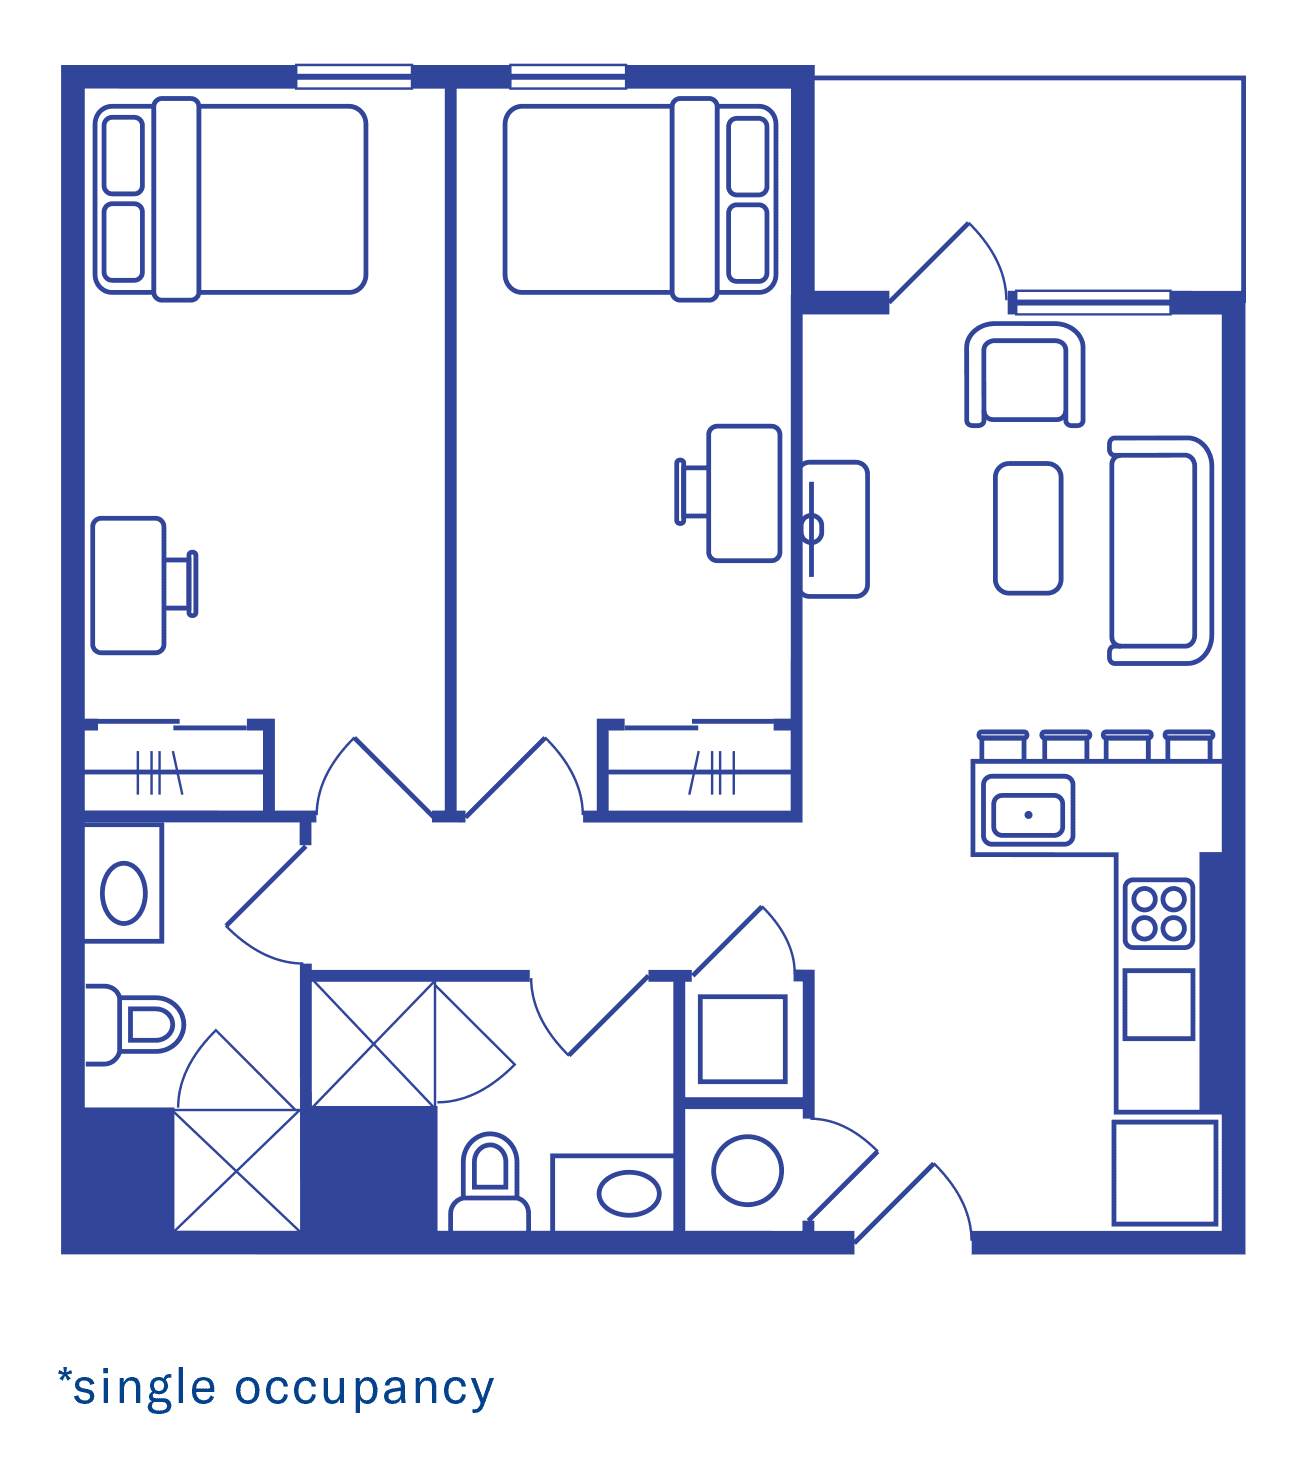 2 Bedroom Floorplan 3